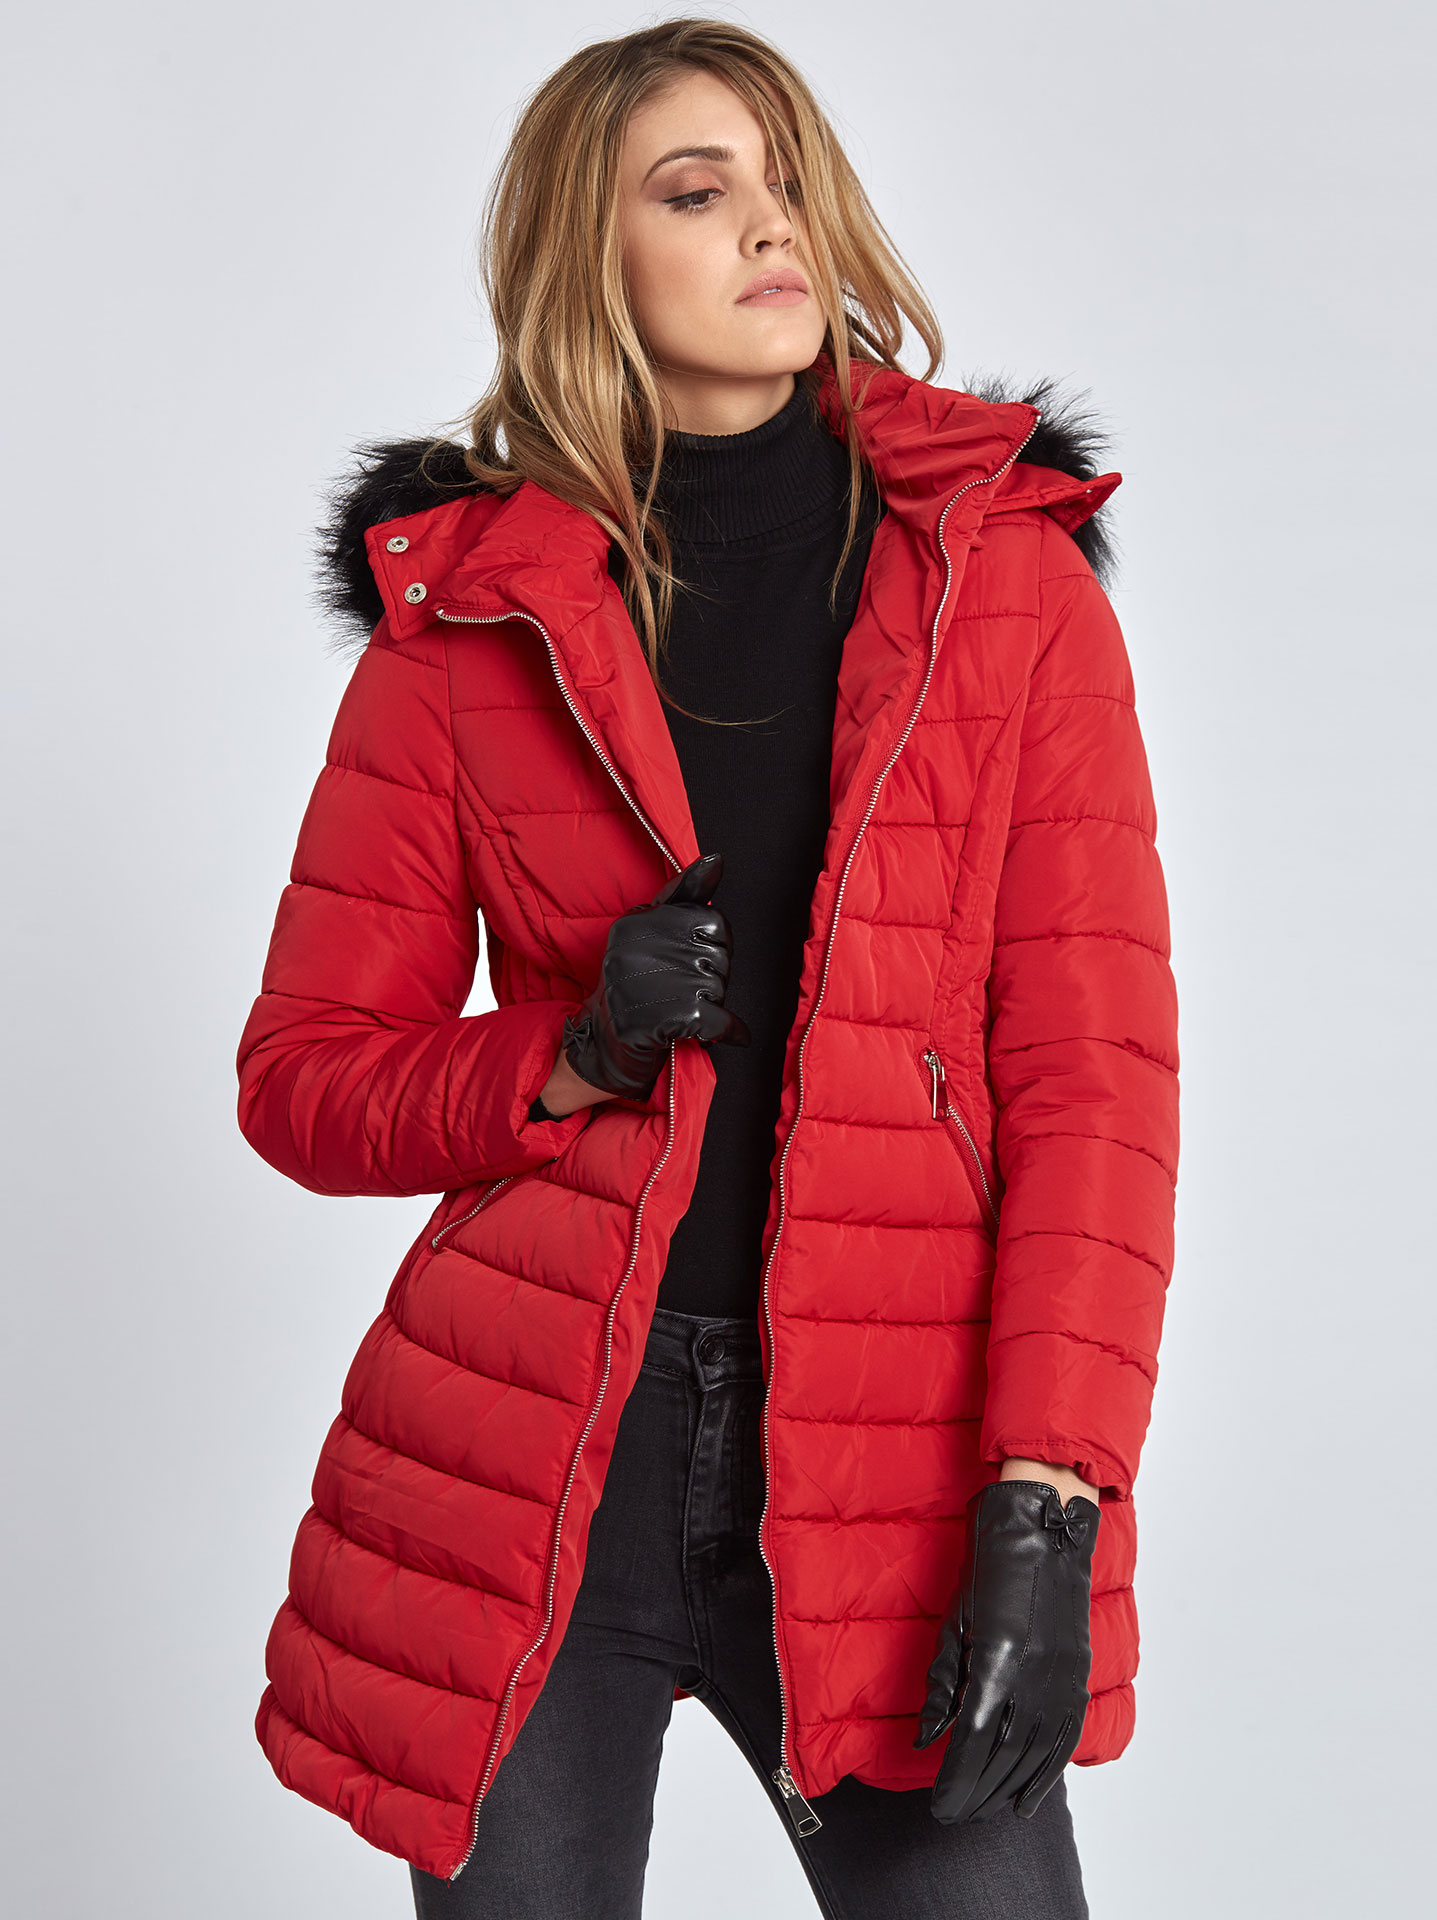 a7ac5fd3edc2 Long hooded puffer coat in red, 49.95€ | Celestino